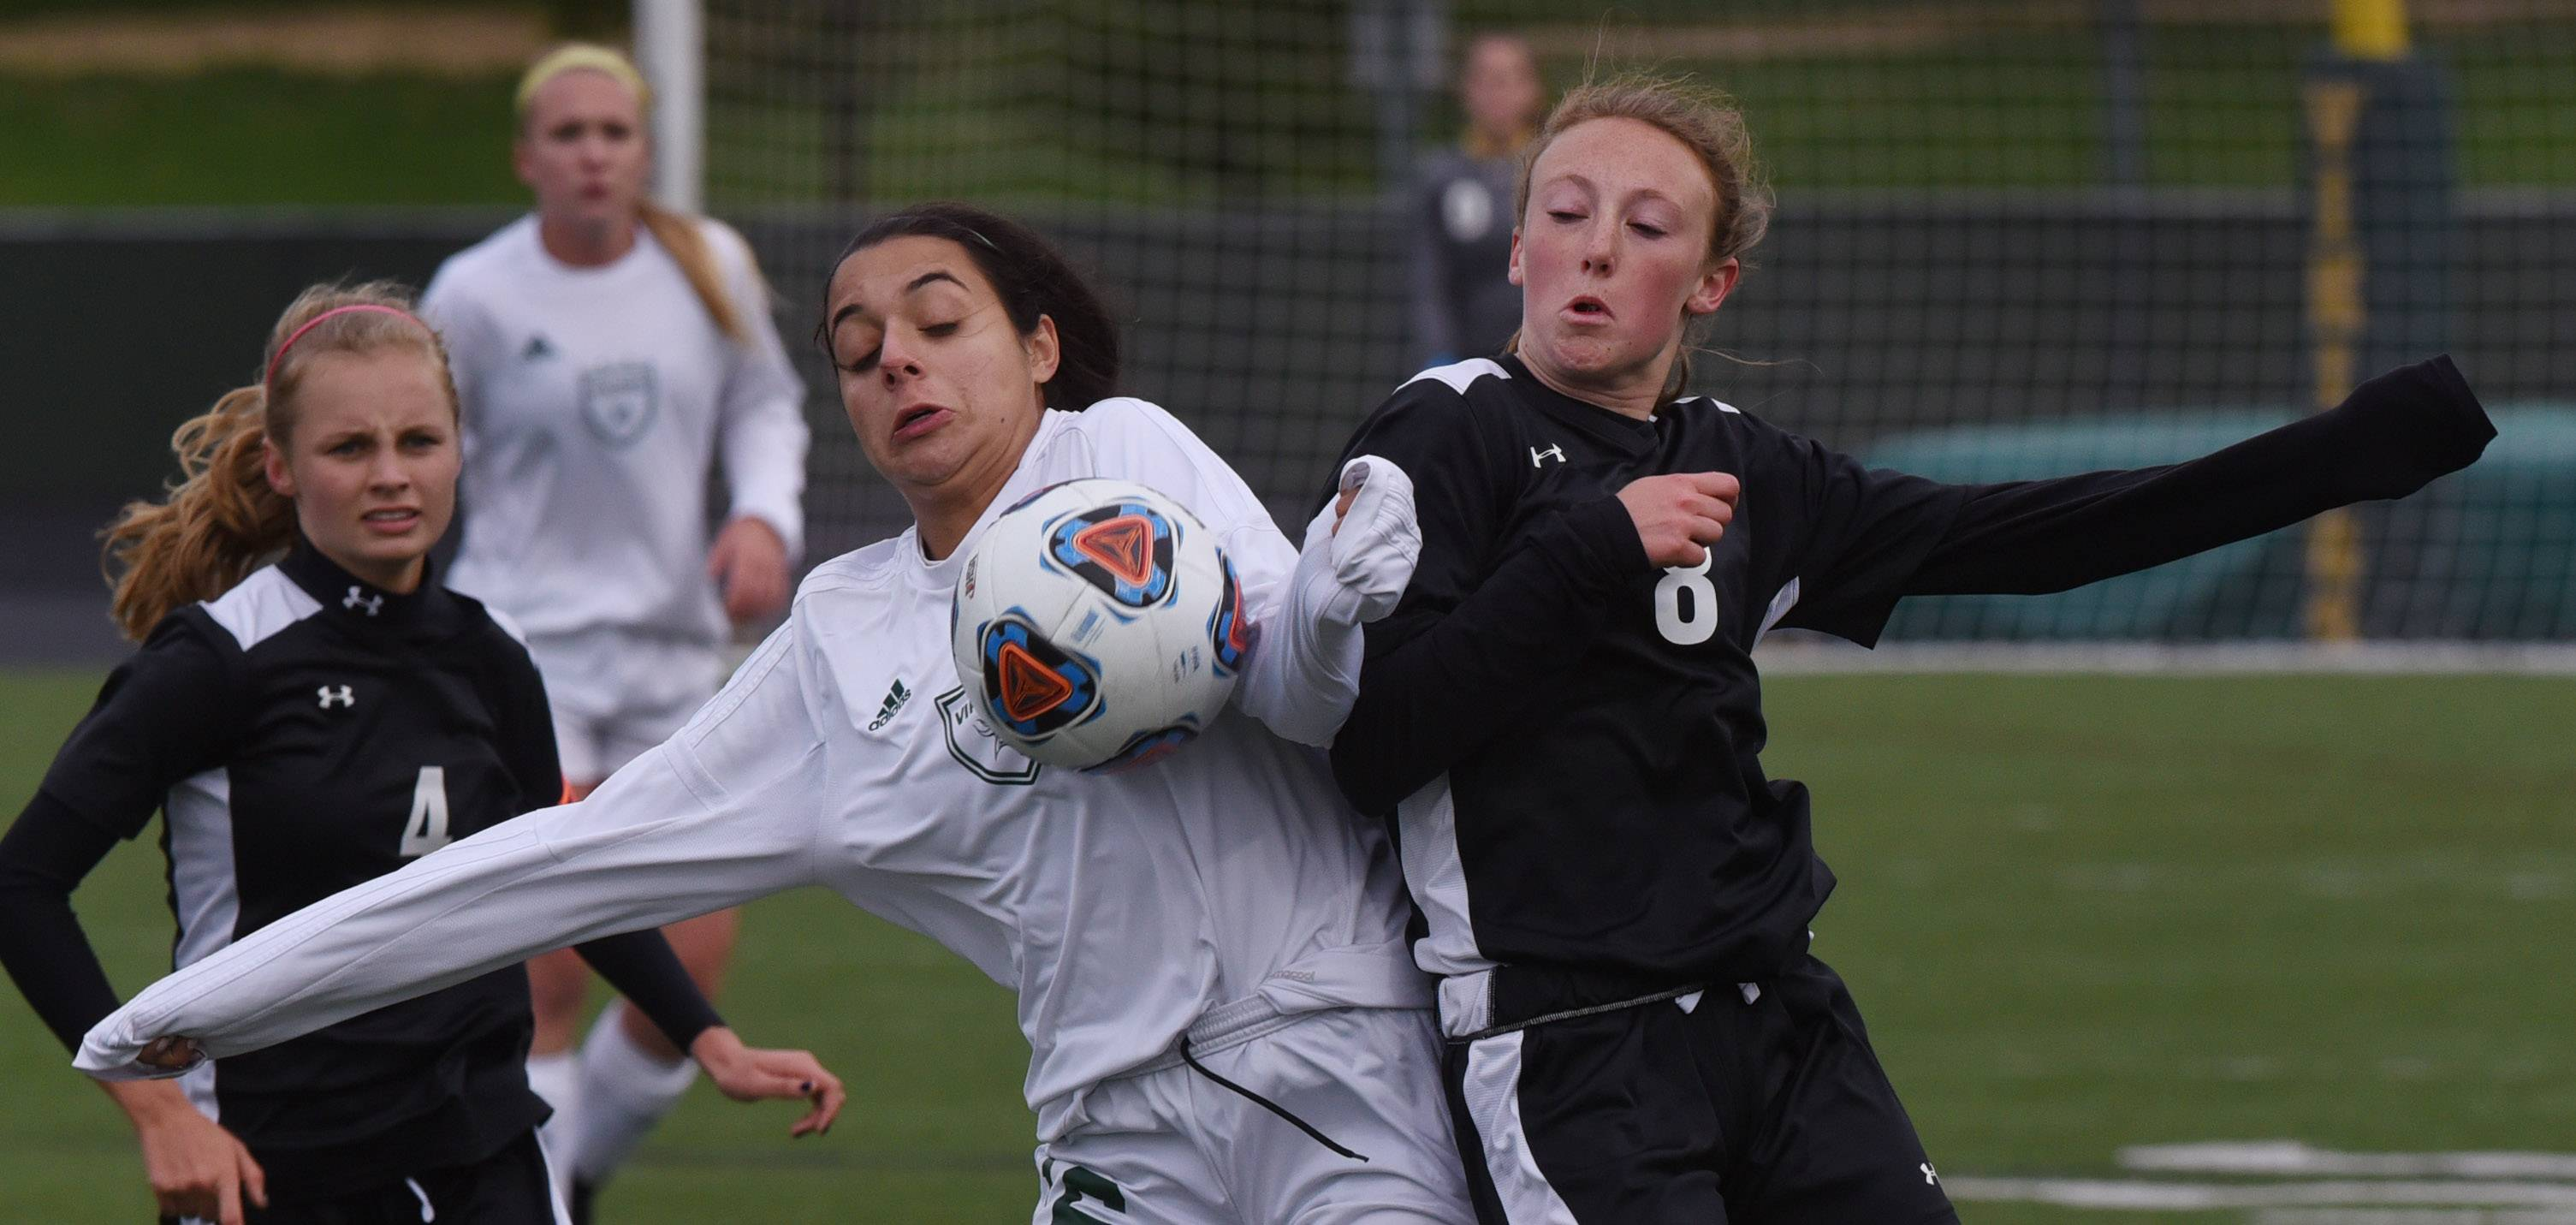 Fremd's Layla Dib, left, and Libertyville's Emma Hollinger make contact as they pursue the ball during the Class 3A girls soccer regional final match in Palatine on Friday.